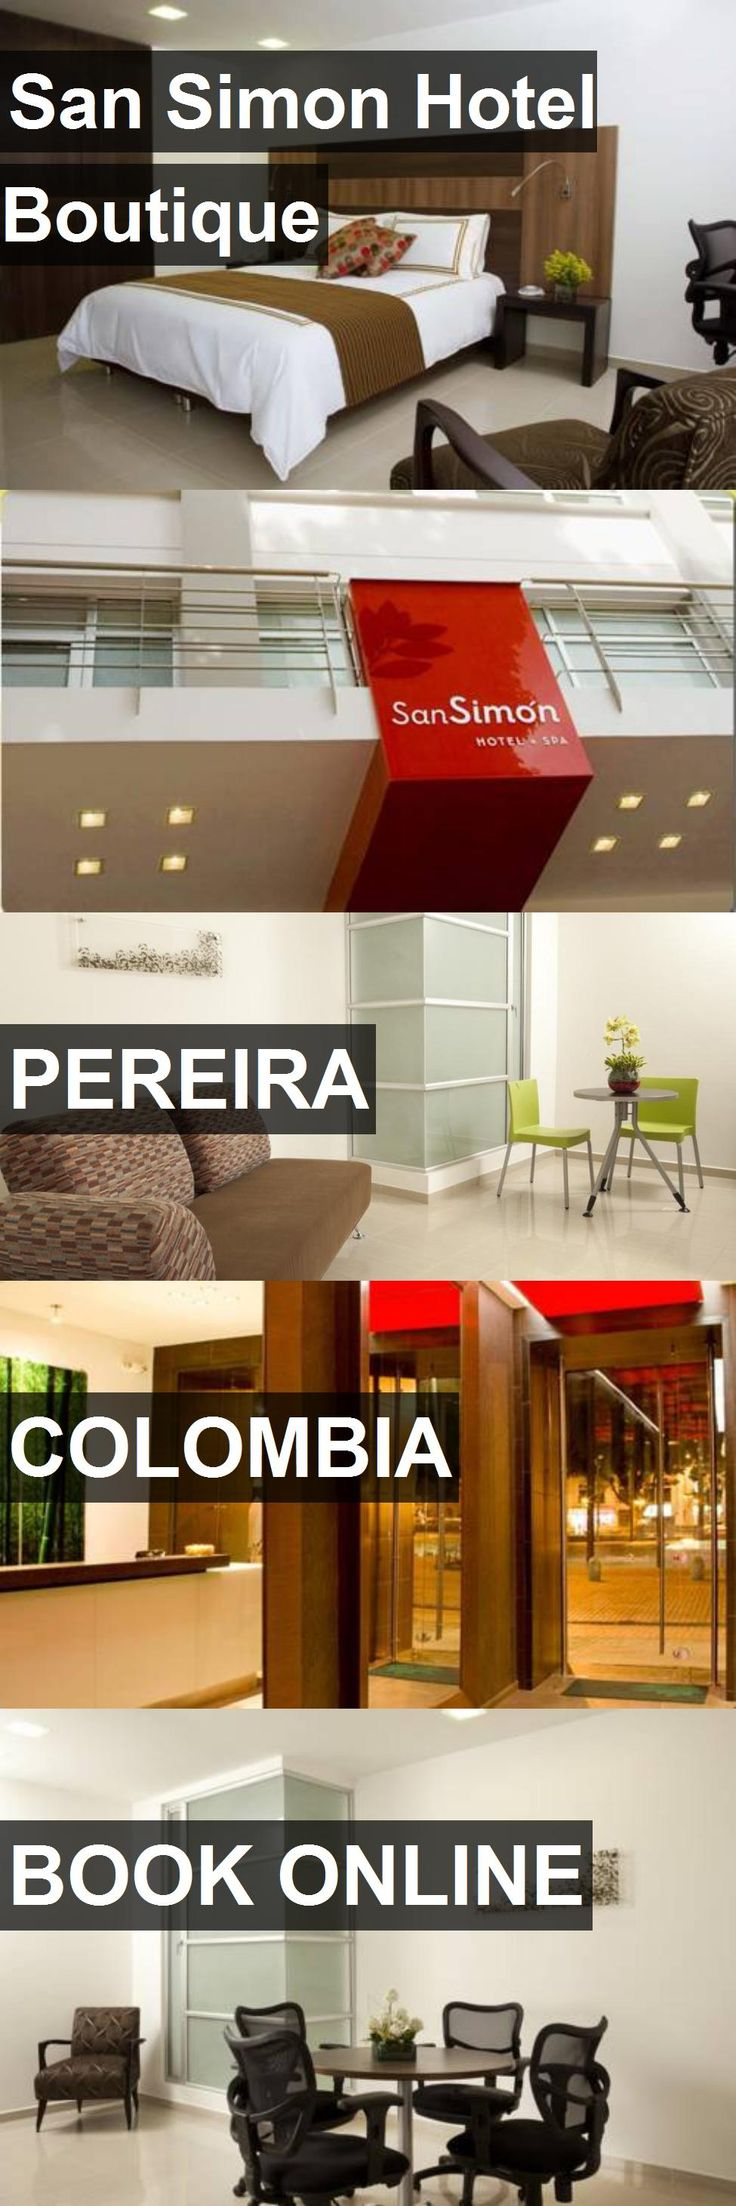 San Simon Hotel Boutique in Pereira, Colombia. For more information, photos, reviews and best prices please follow the link. #Colombia #Pereira #travel #vacation #hotel